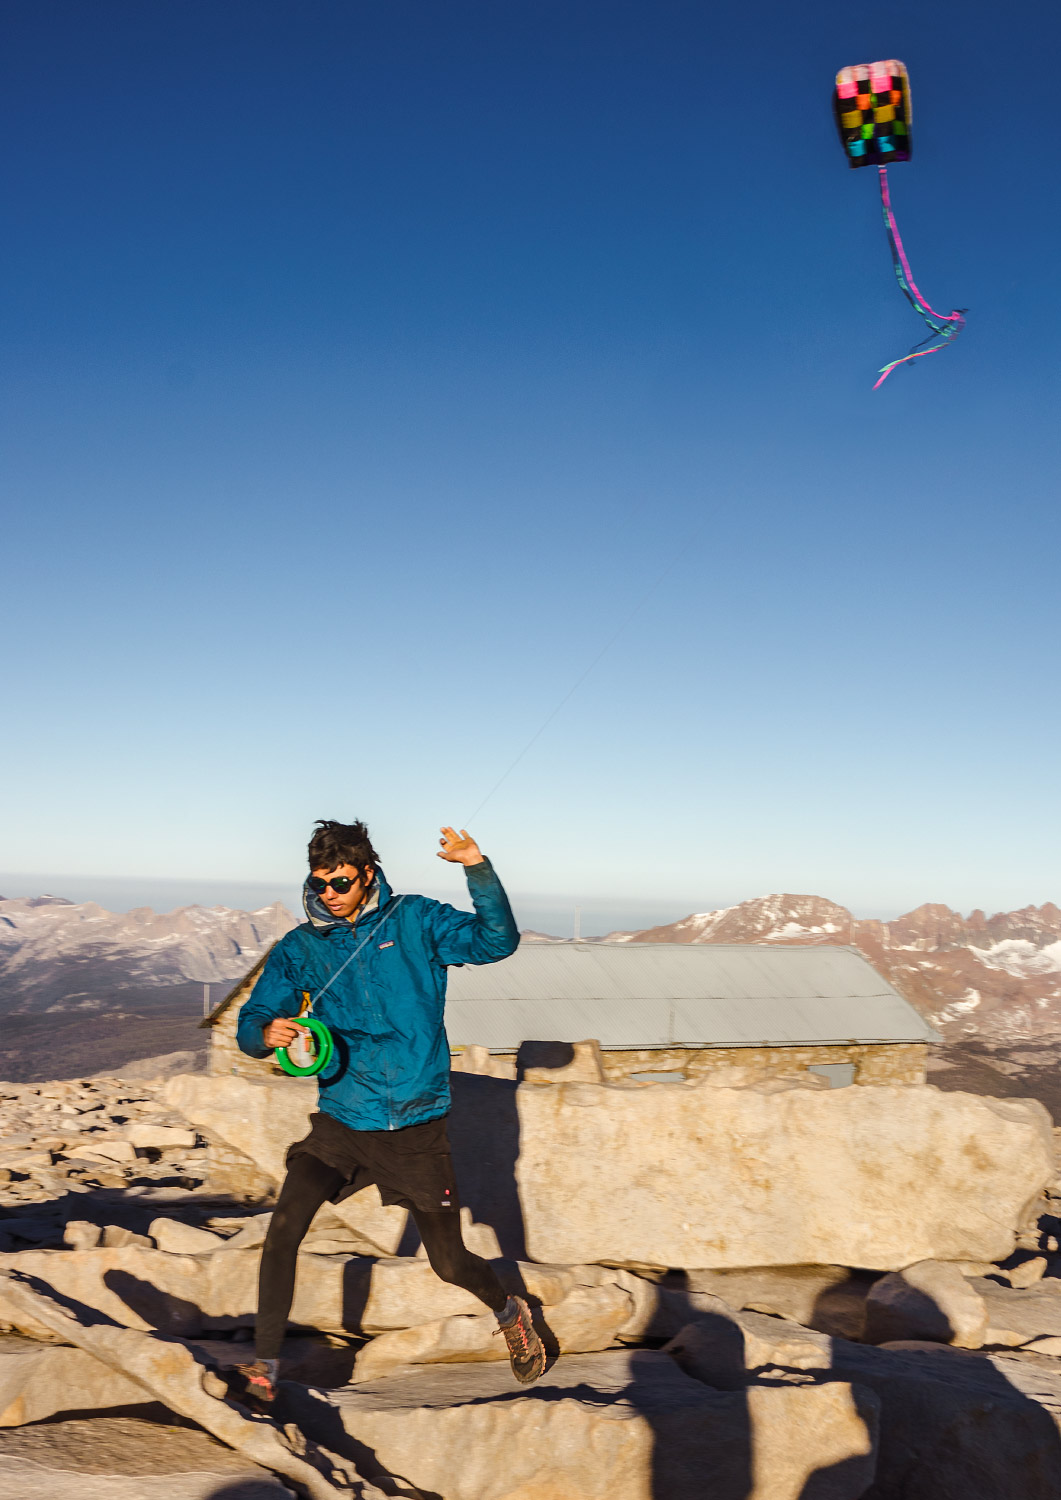 Kite-flying on the summit of Mount Whitney, Inyo, California; 2018.